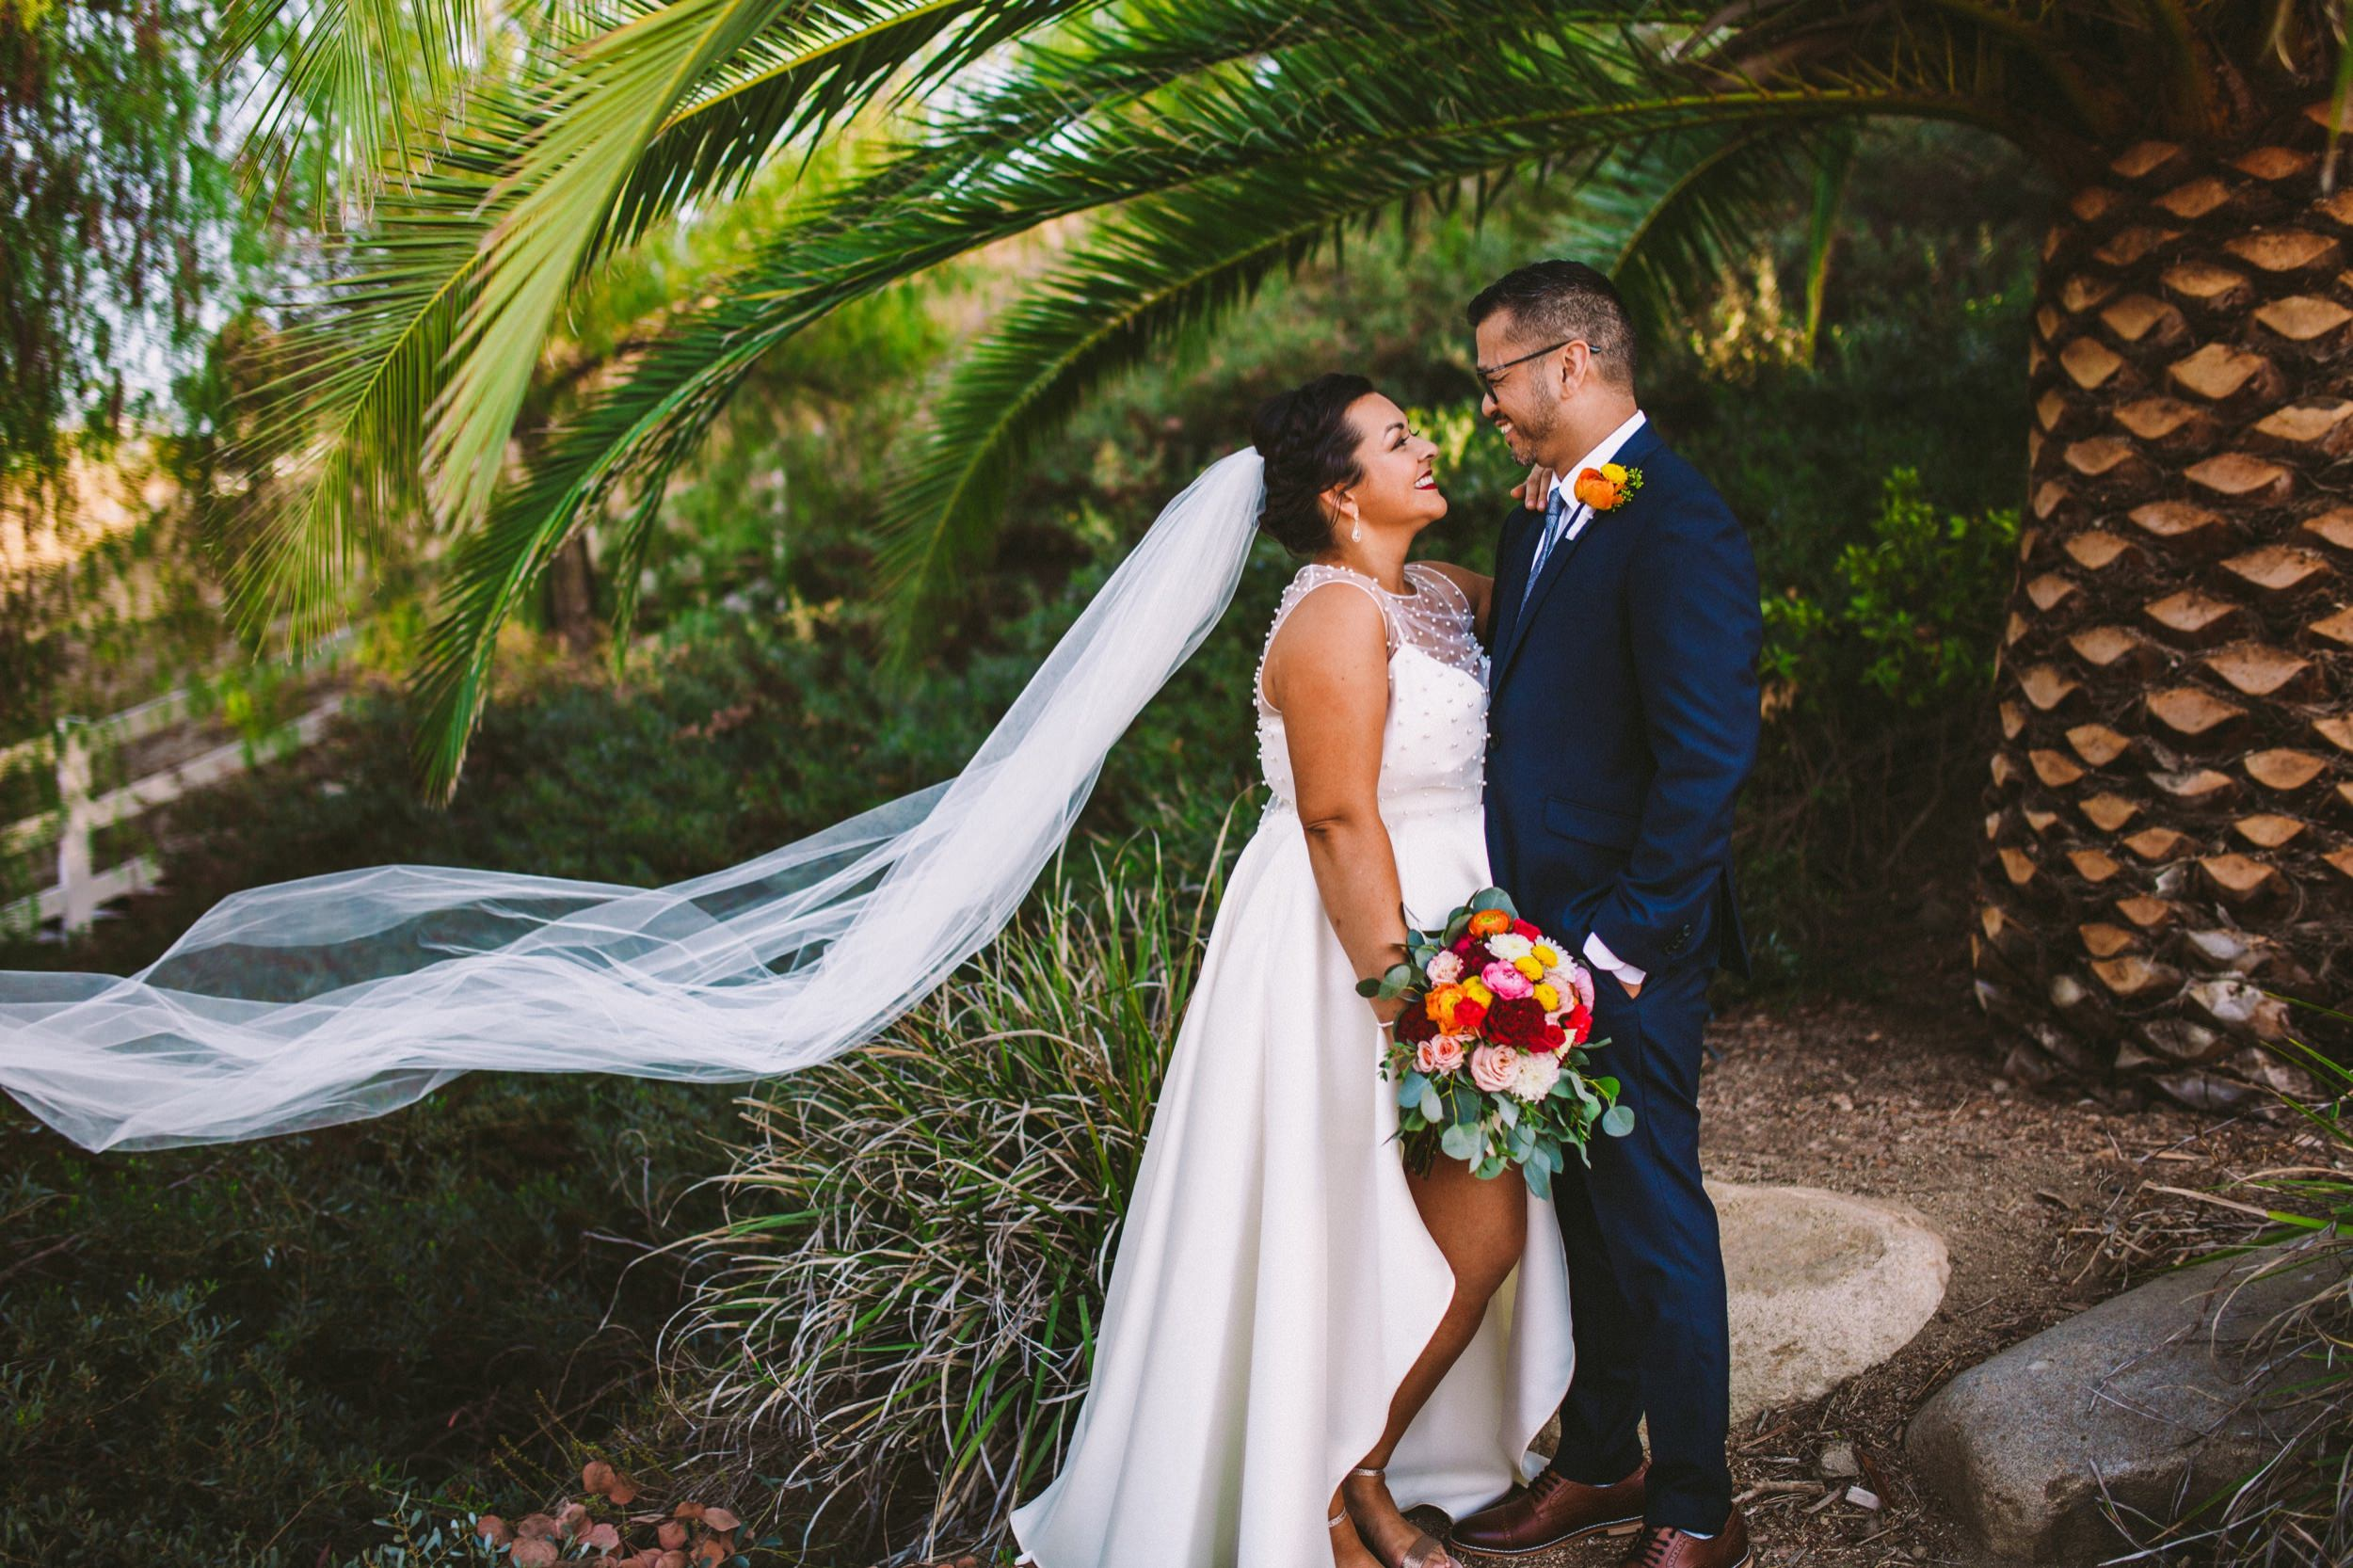 Joyful & Colorful Wedding Day Portraits with Flowing Veil in Temecula Wedding